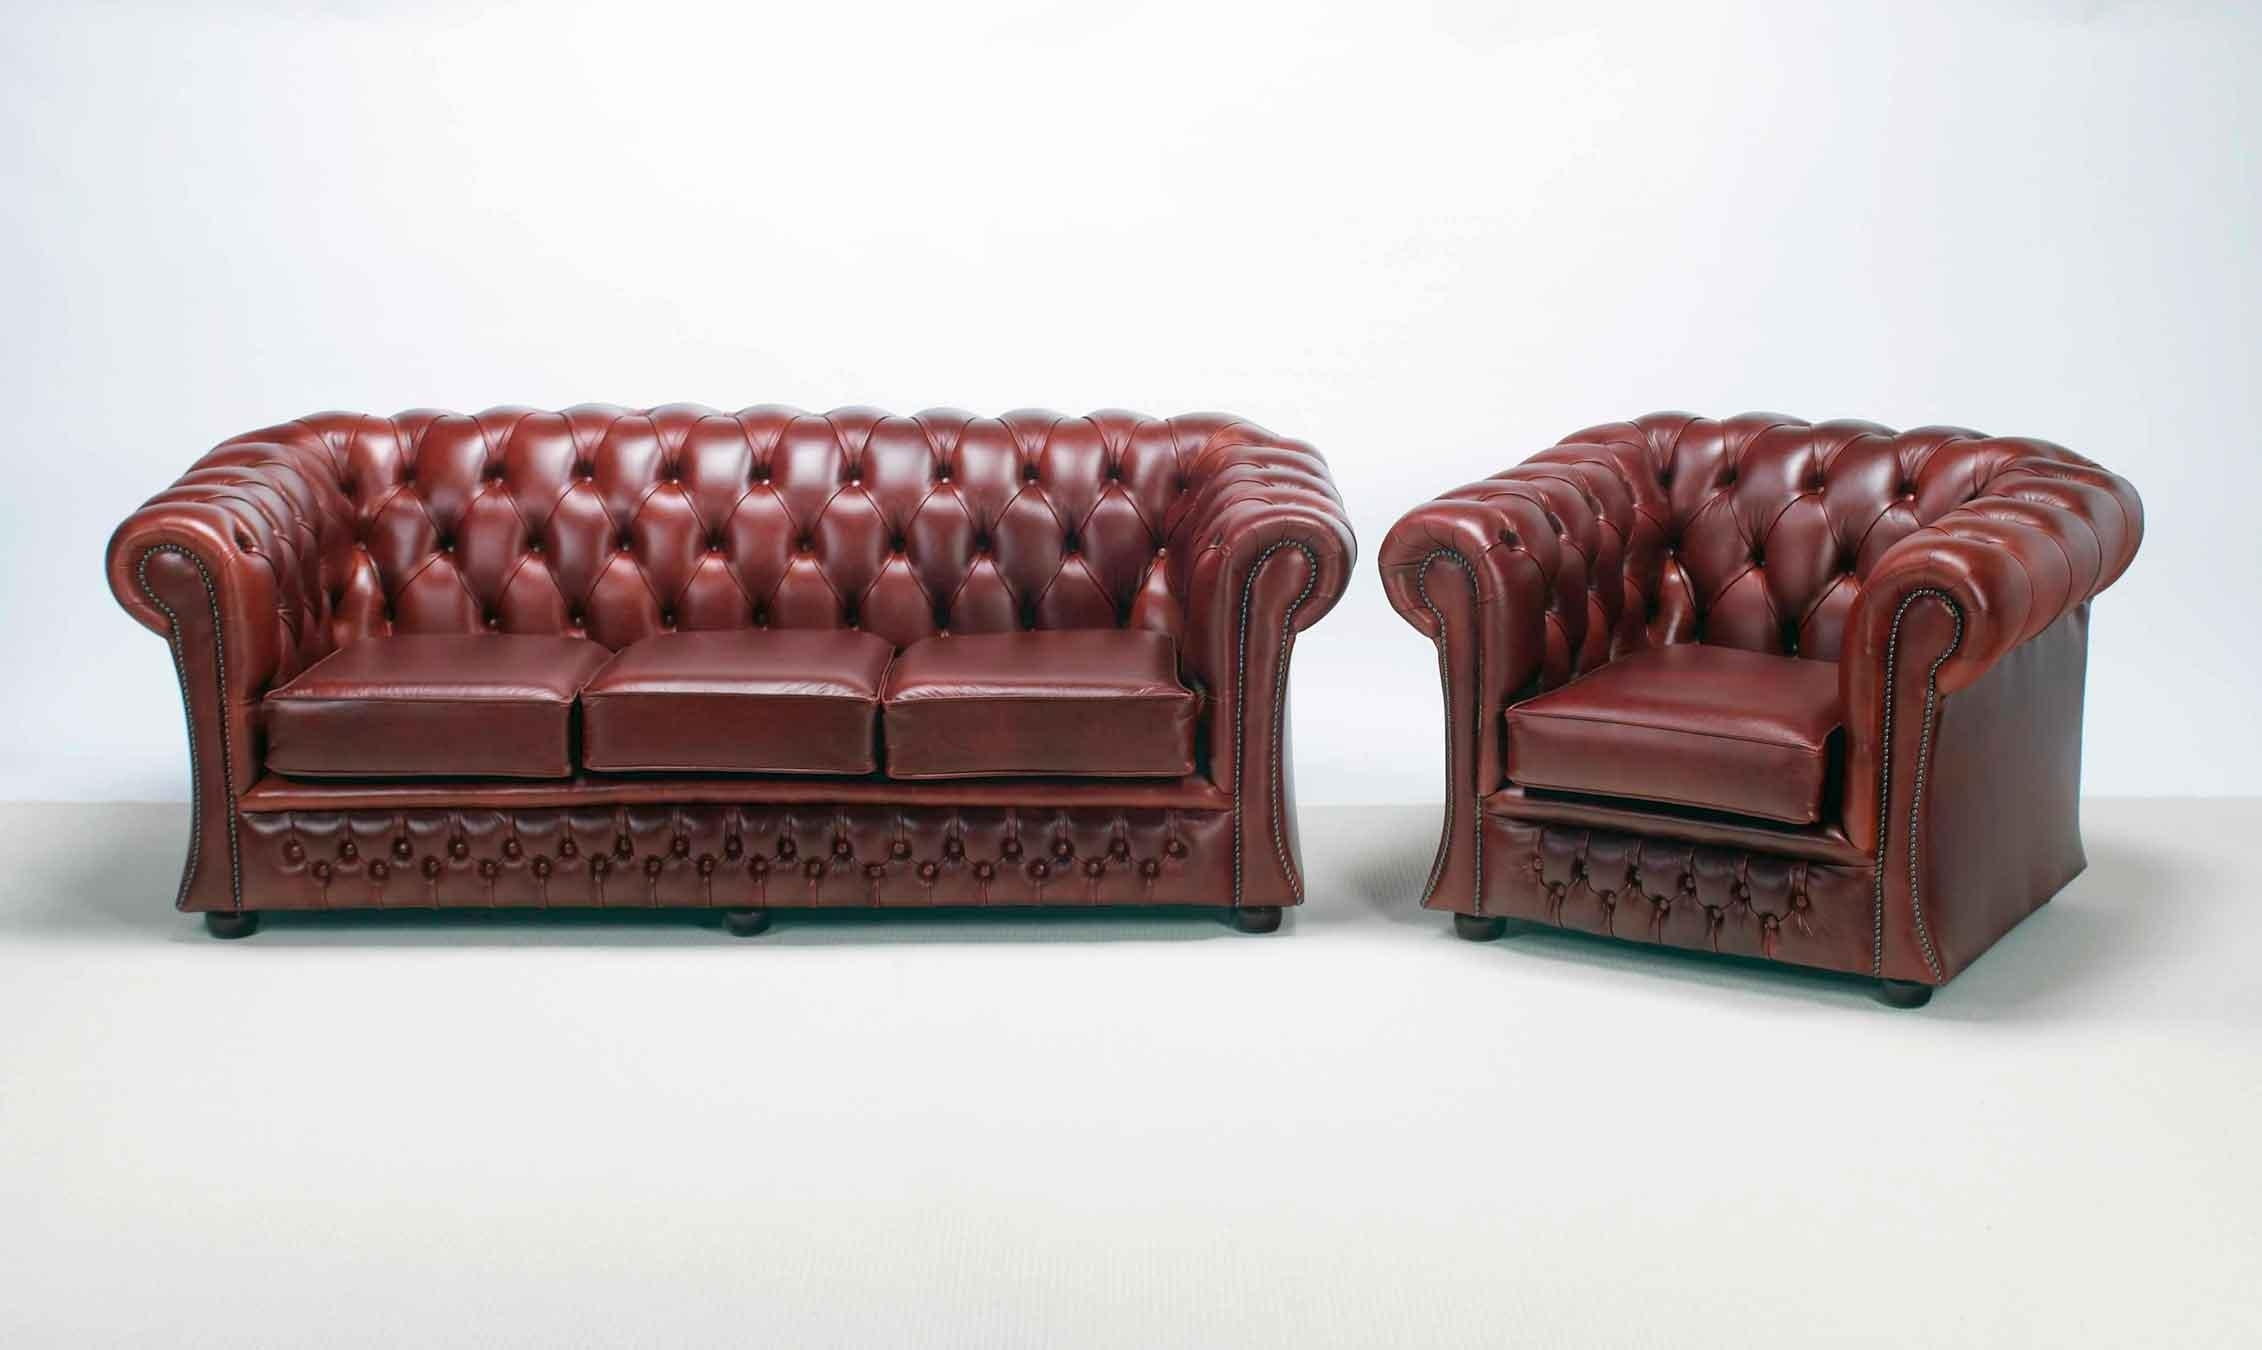 Furniture: Have A Luxury Living Room With The Elegant Chesterfield Within Chesterfield Sofa And Chairs (View 5 of 20)